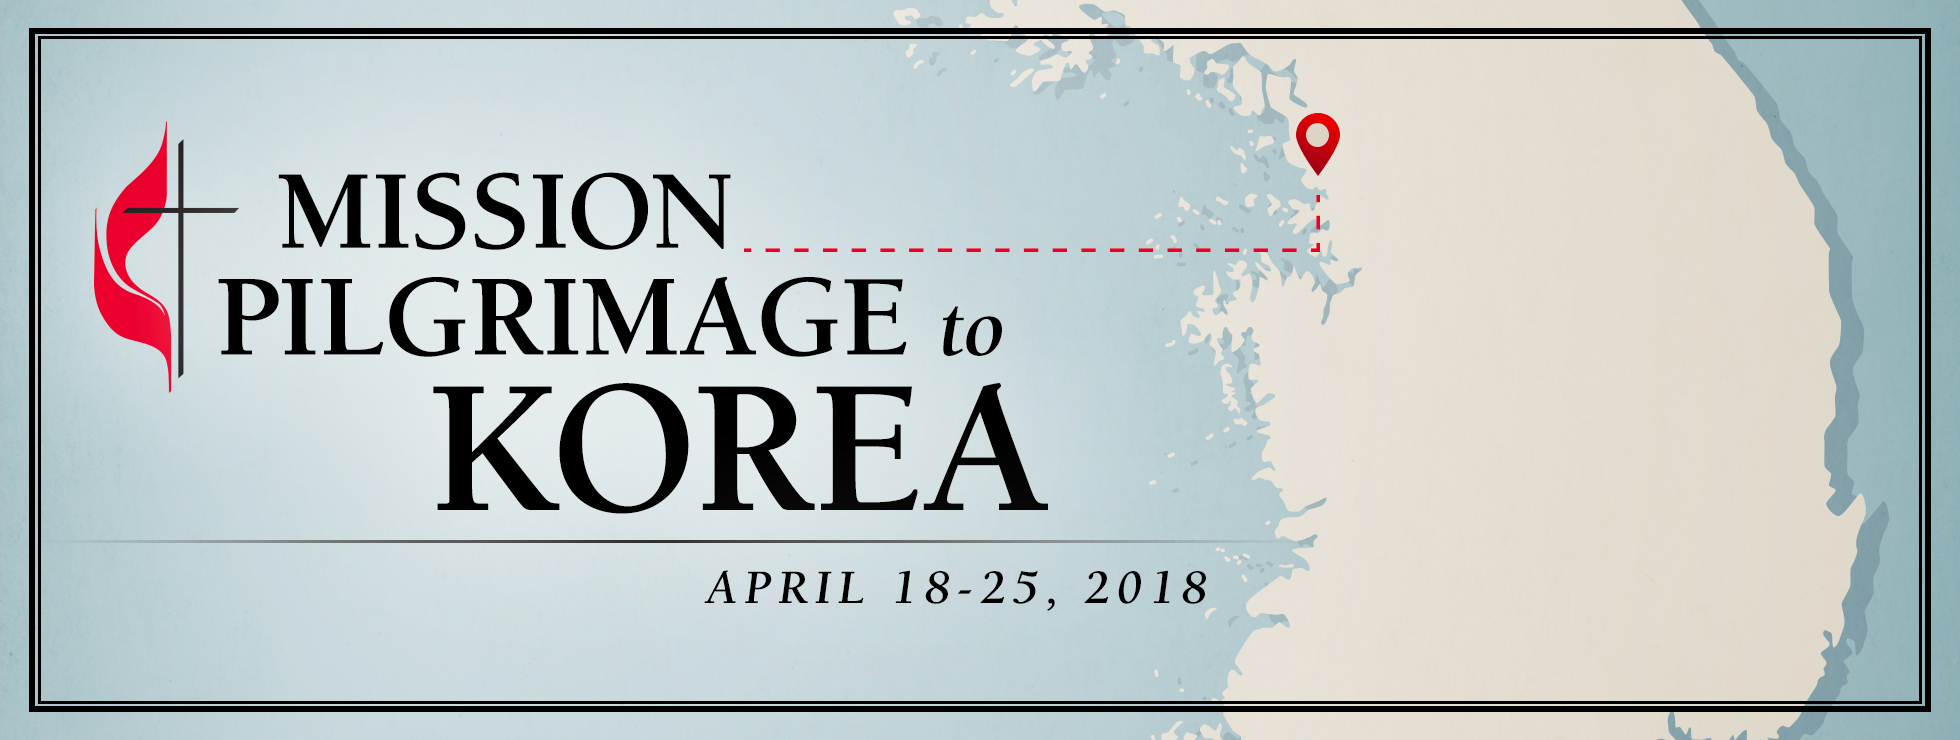 Mission Pilgrimage to Korea 2018